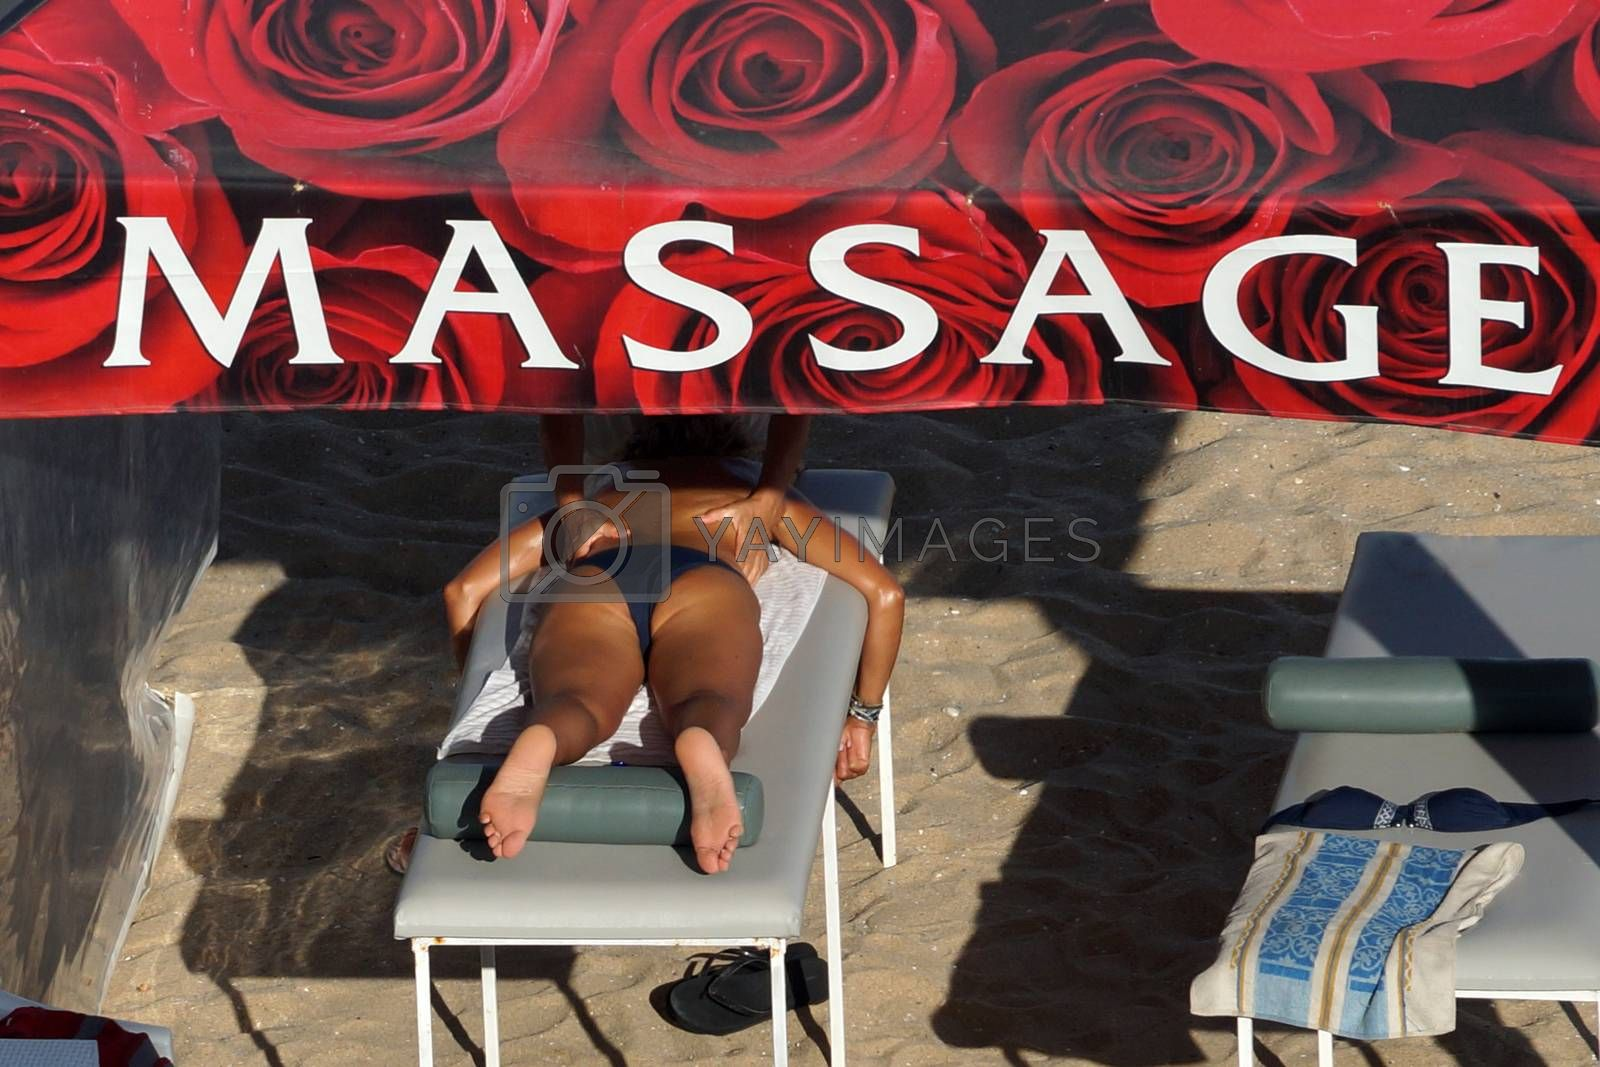 Varna, Bulgaria - August, 16, 2020: Masseuse massages woman in tent on the beach